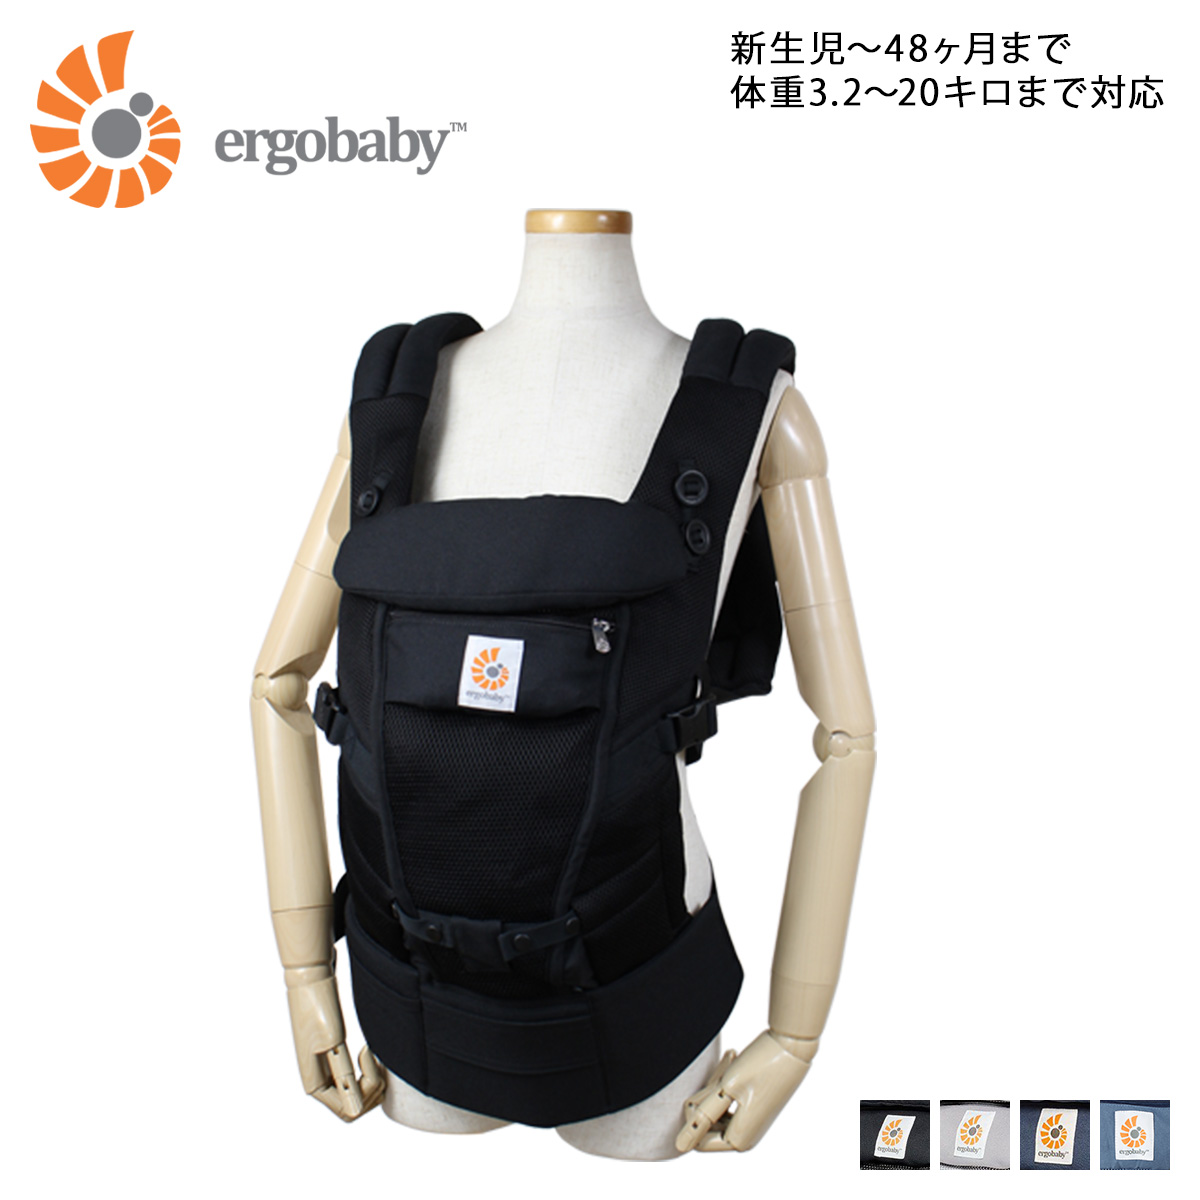 Whats Up Sports Ergobaby Adapt Baby Carrier Cool Air Mesh